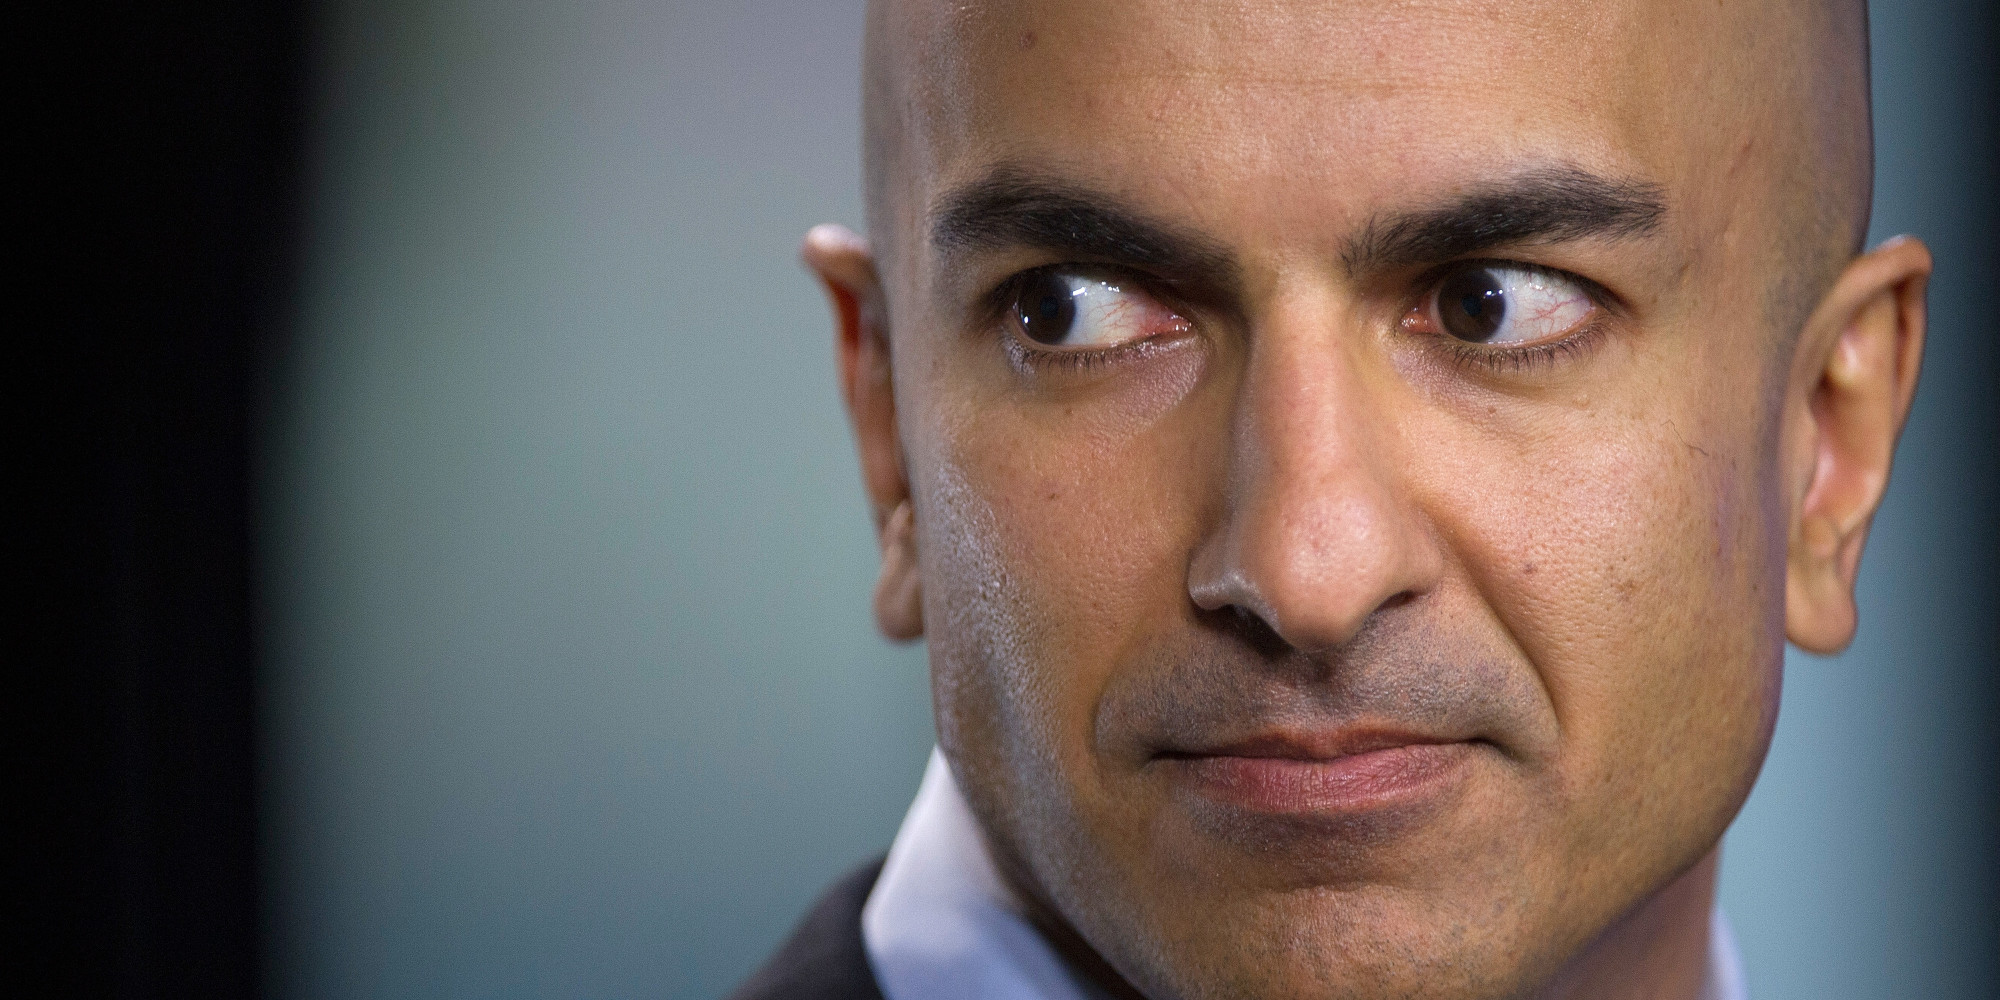 from Hassan neel kashkari is gay